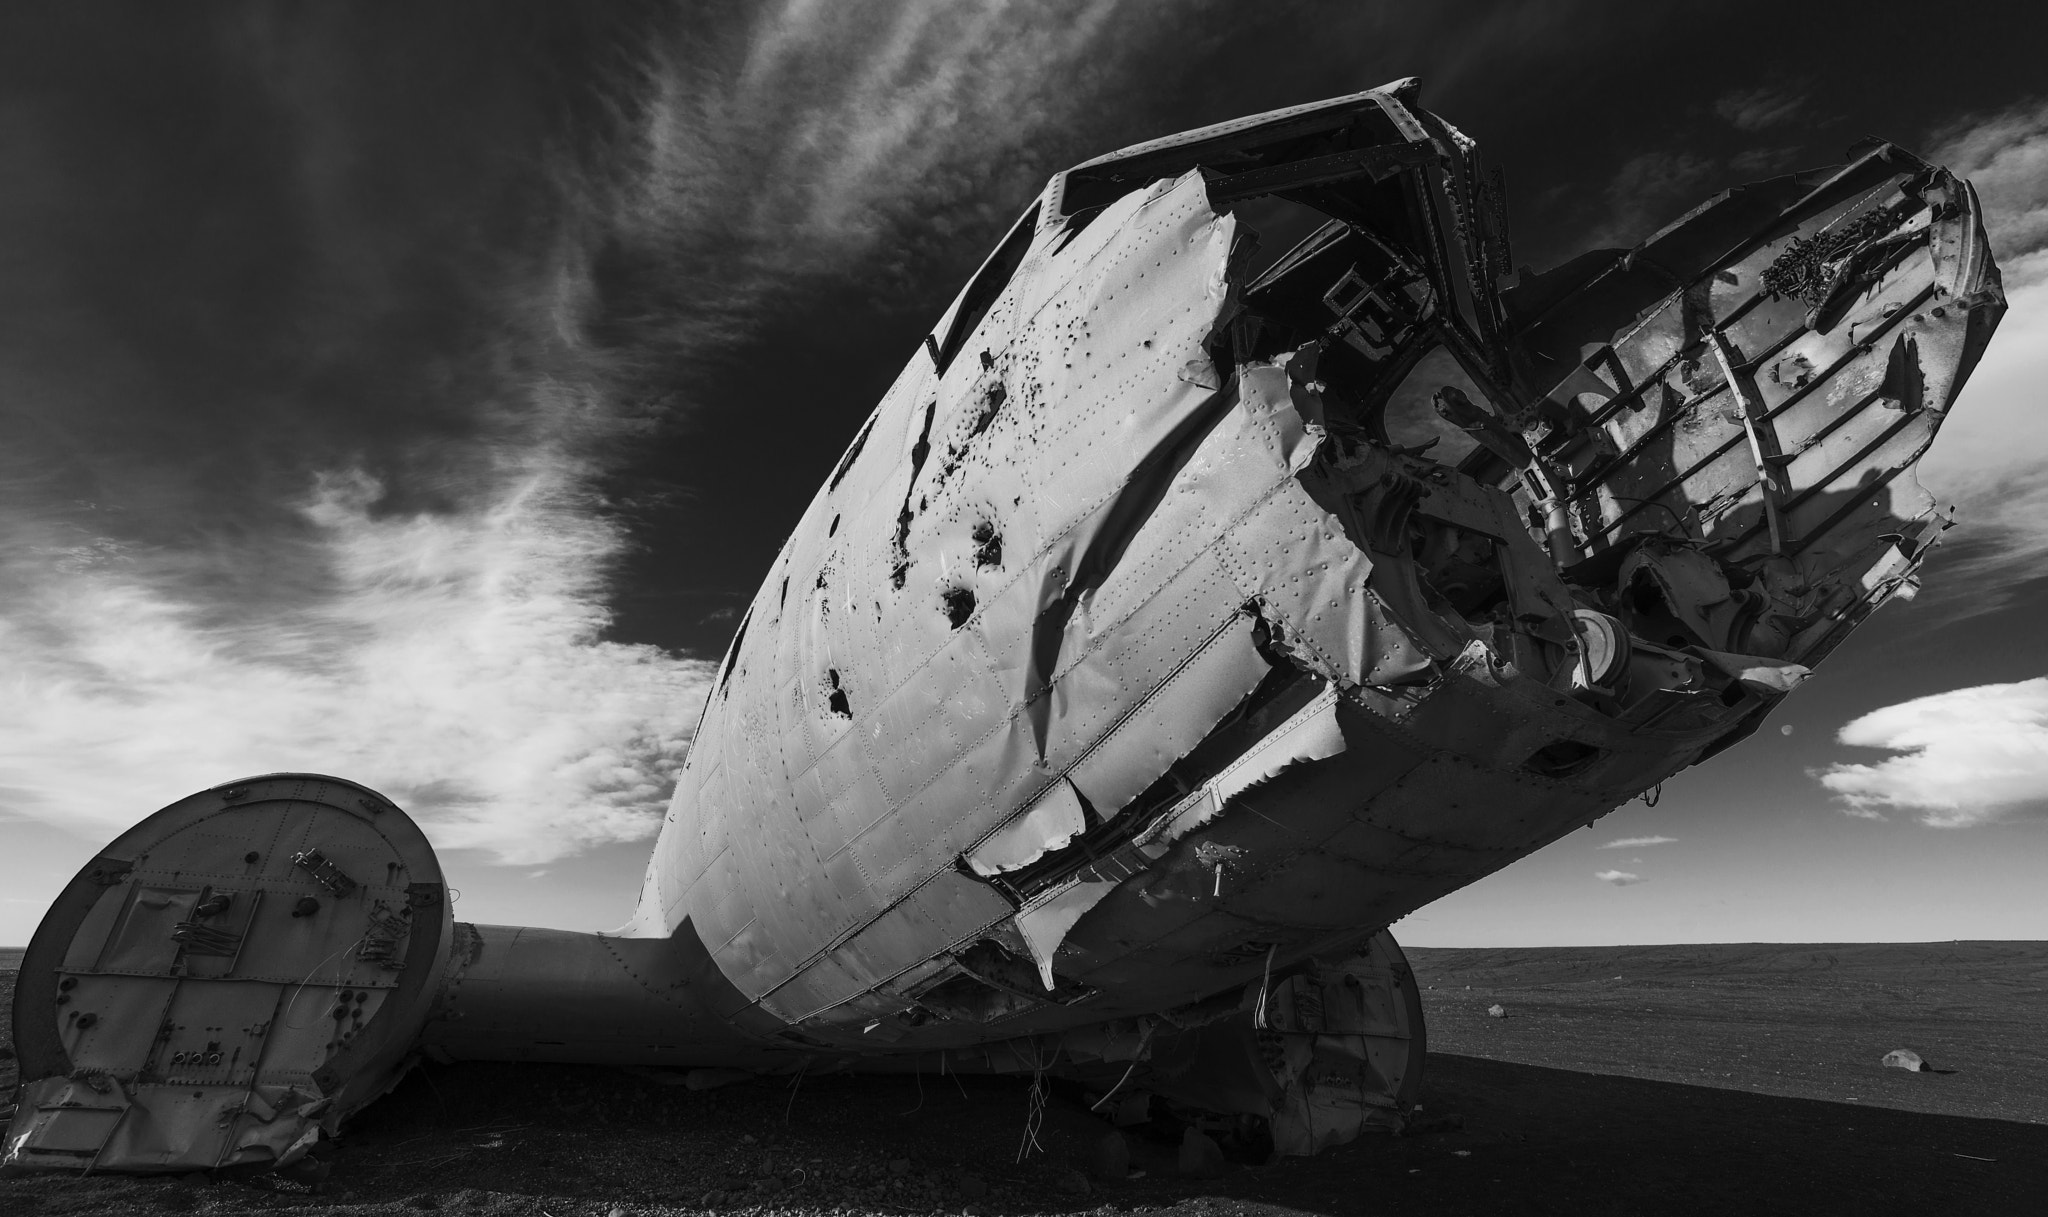 Photograph Beached Plane by Andrew Dickman on 500px